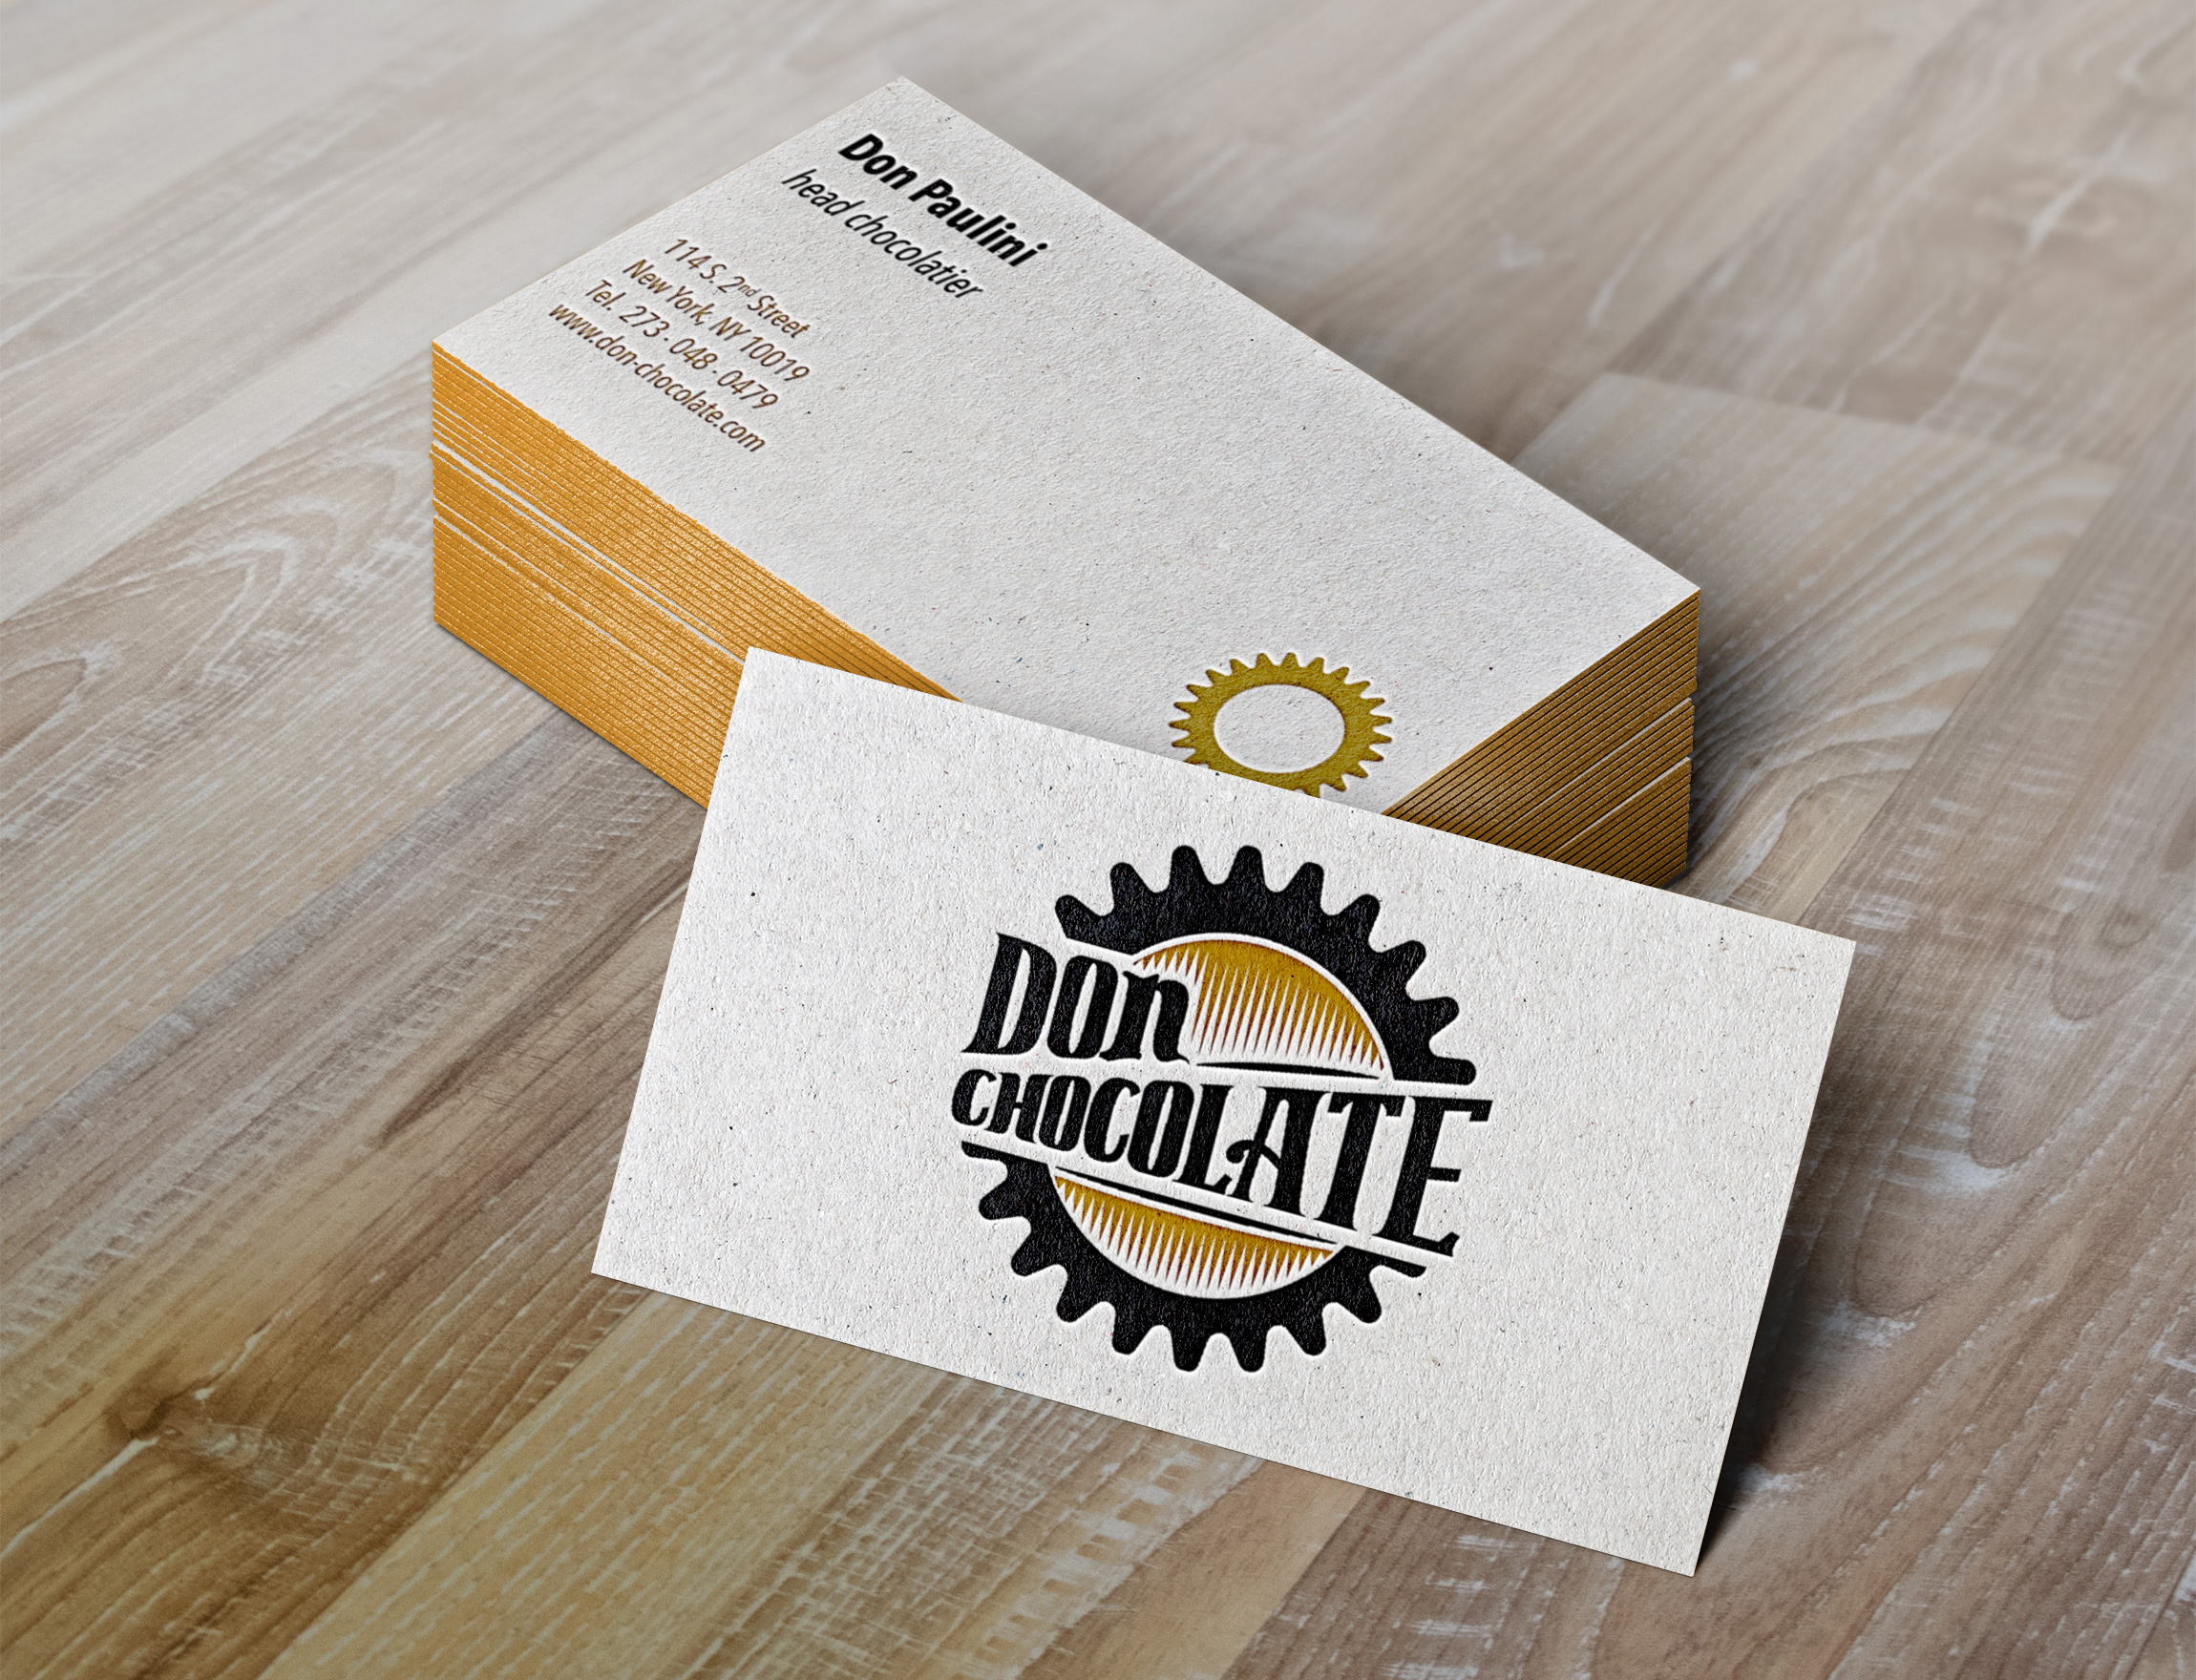 Chocolate Business Cards Image collections - Free Business Cards